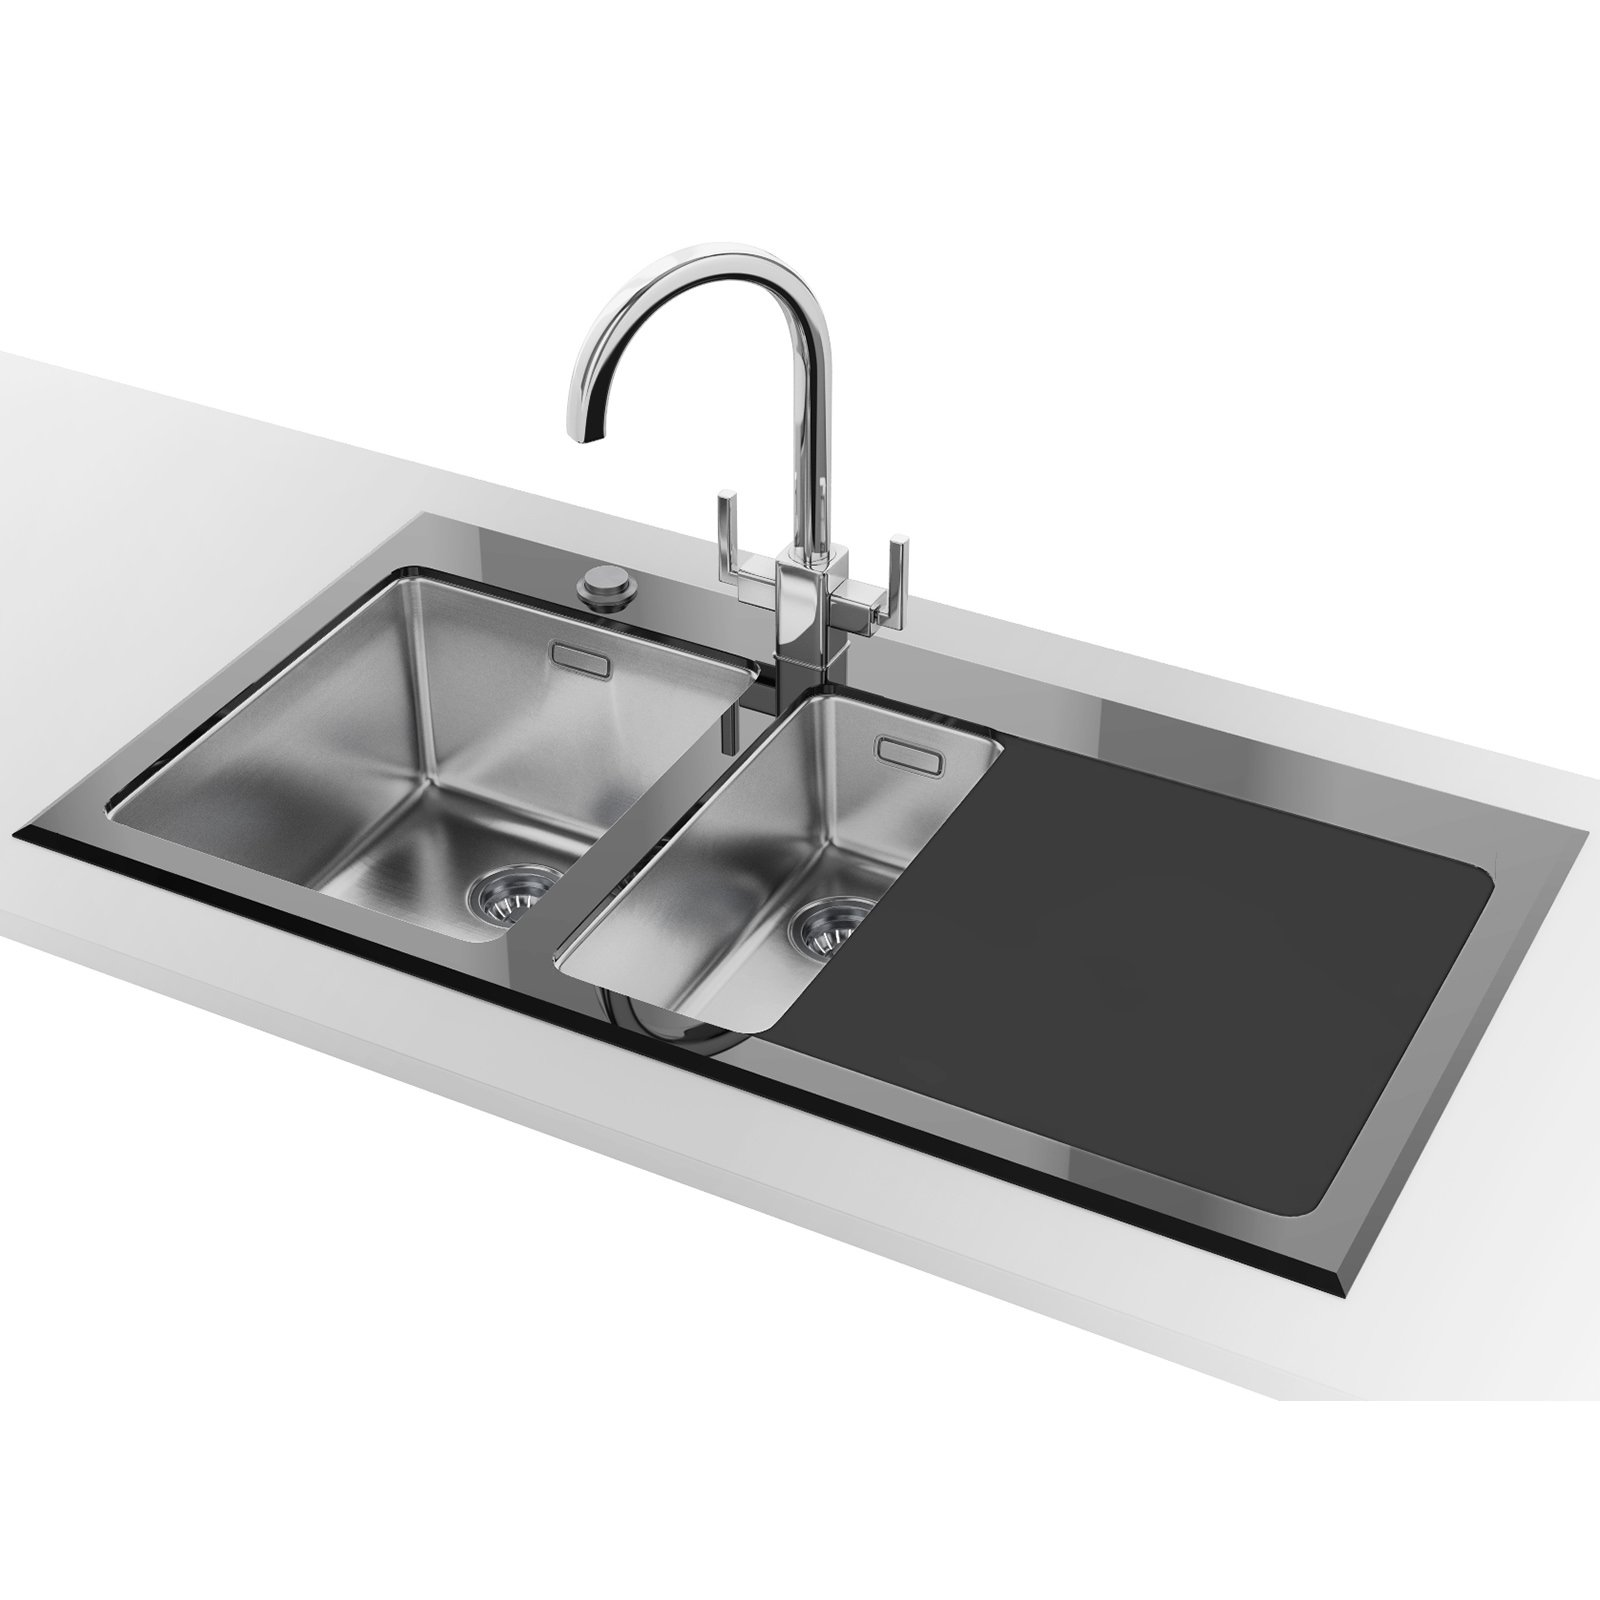 Glass top bathroom sinks - Franke Kubus Kbv 651 1 5 Bowl Rh Drainer Black Glass Inset